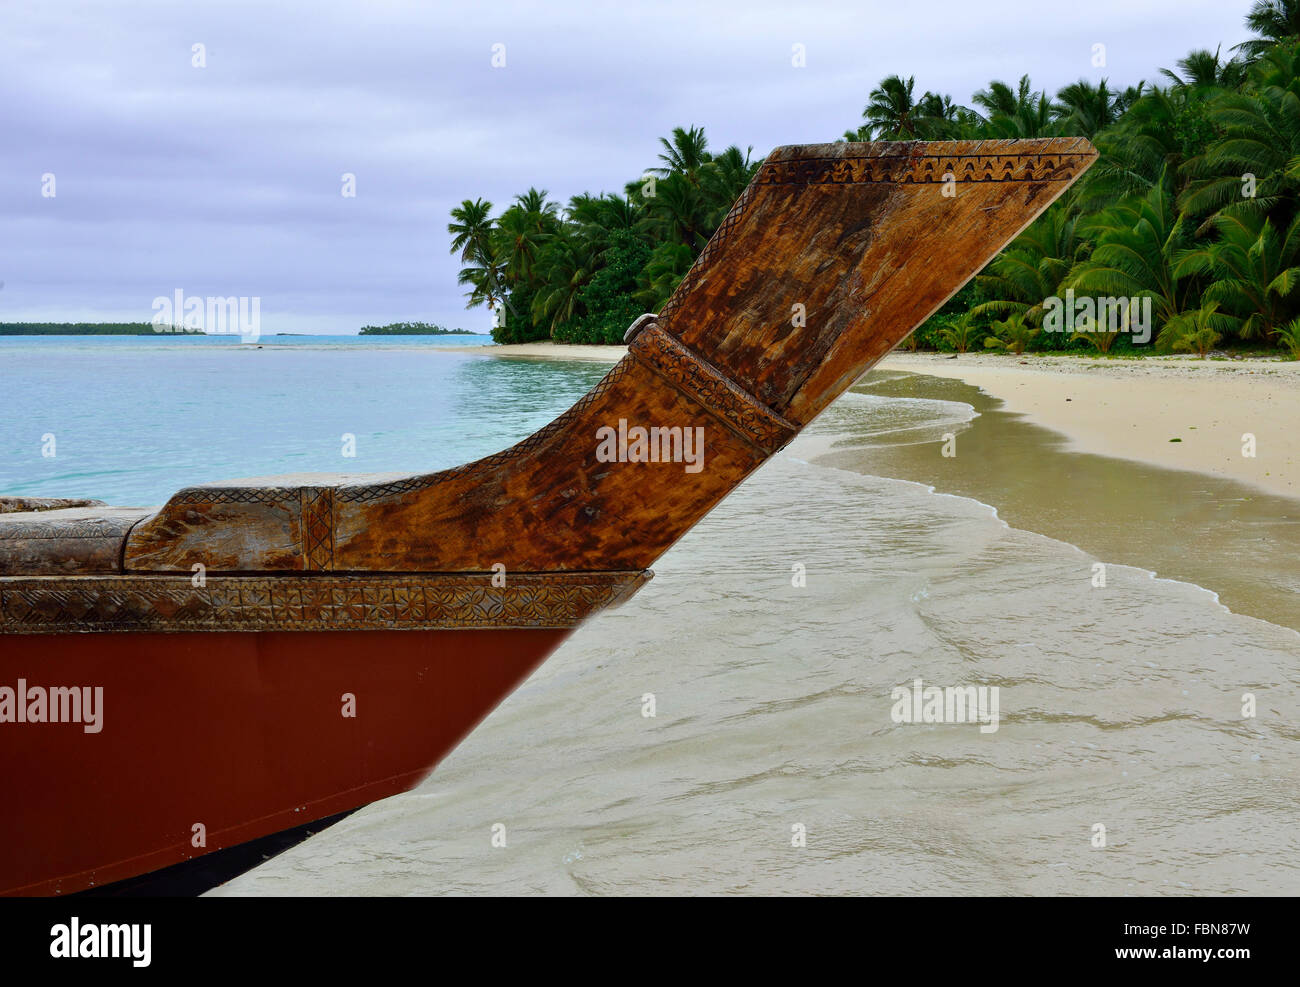 Prow of a traditional polynesian wooden boat or Vaka on the beach and lagoon of tropical One Foot Island, Aitutaki, Stock Photo